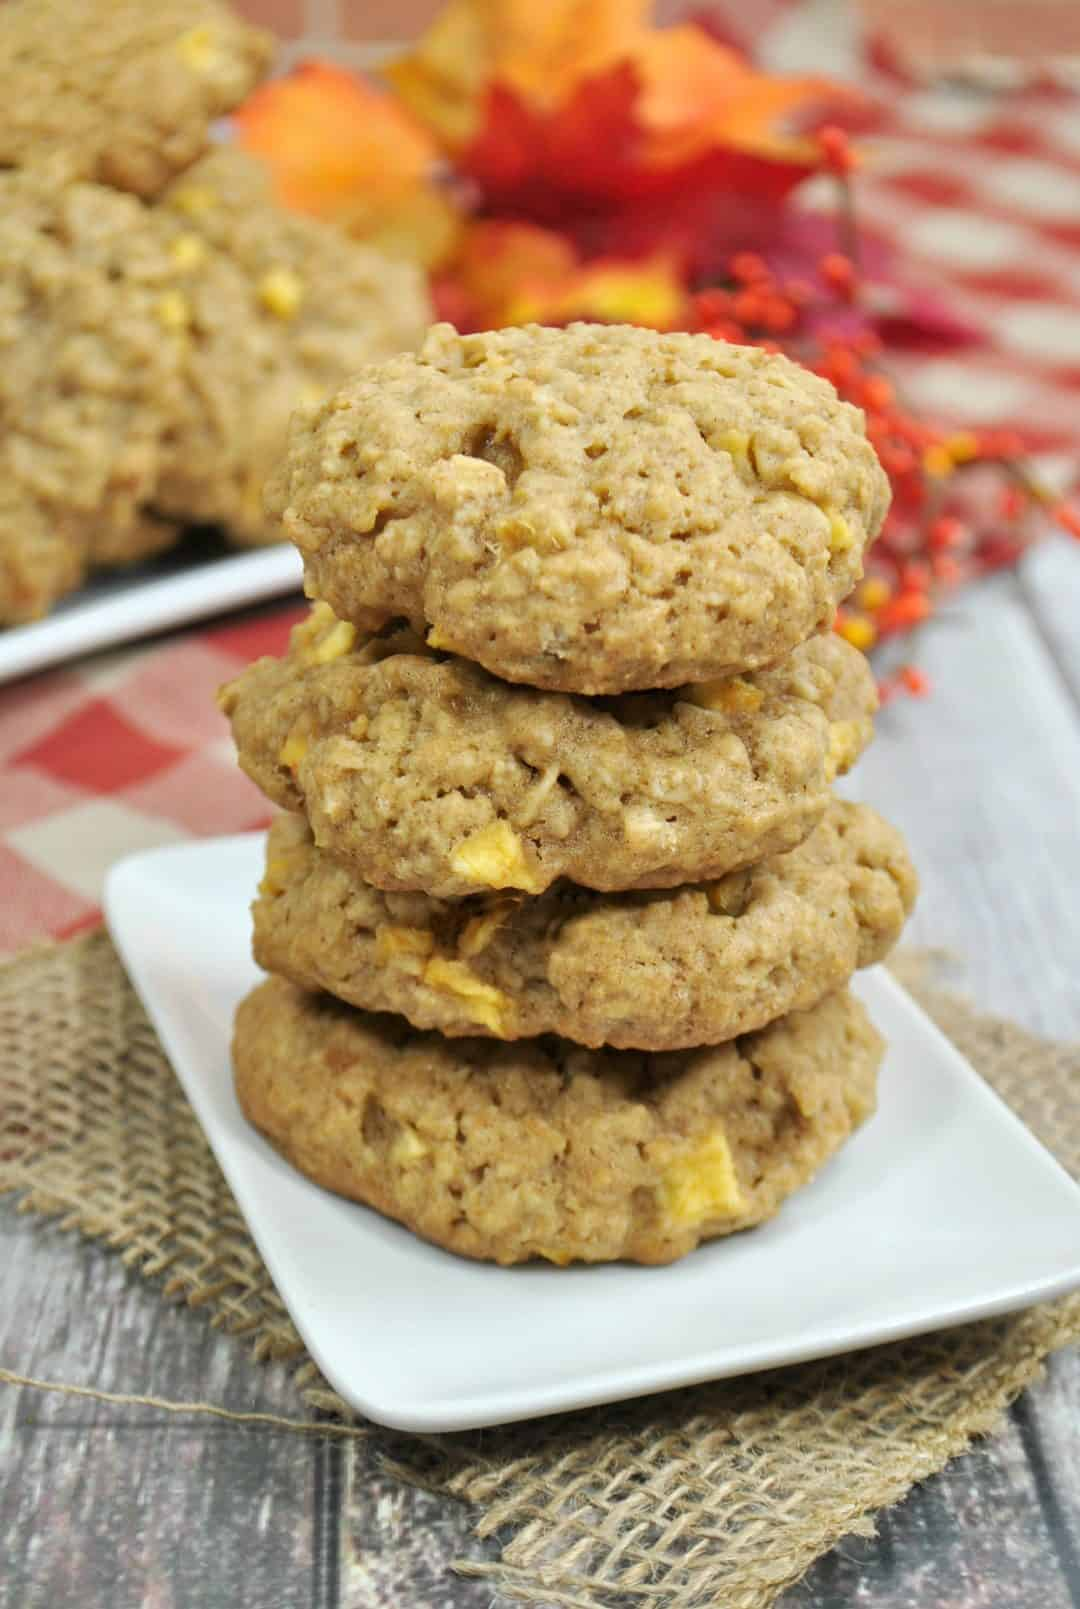 Apple Oatmeal cookies stacked on a plate ready to be eaten